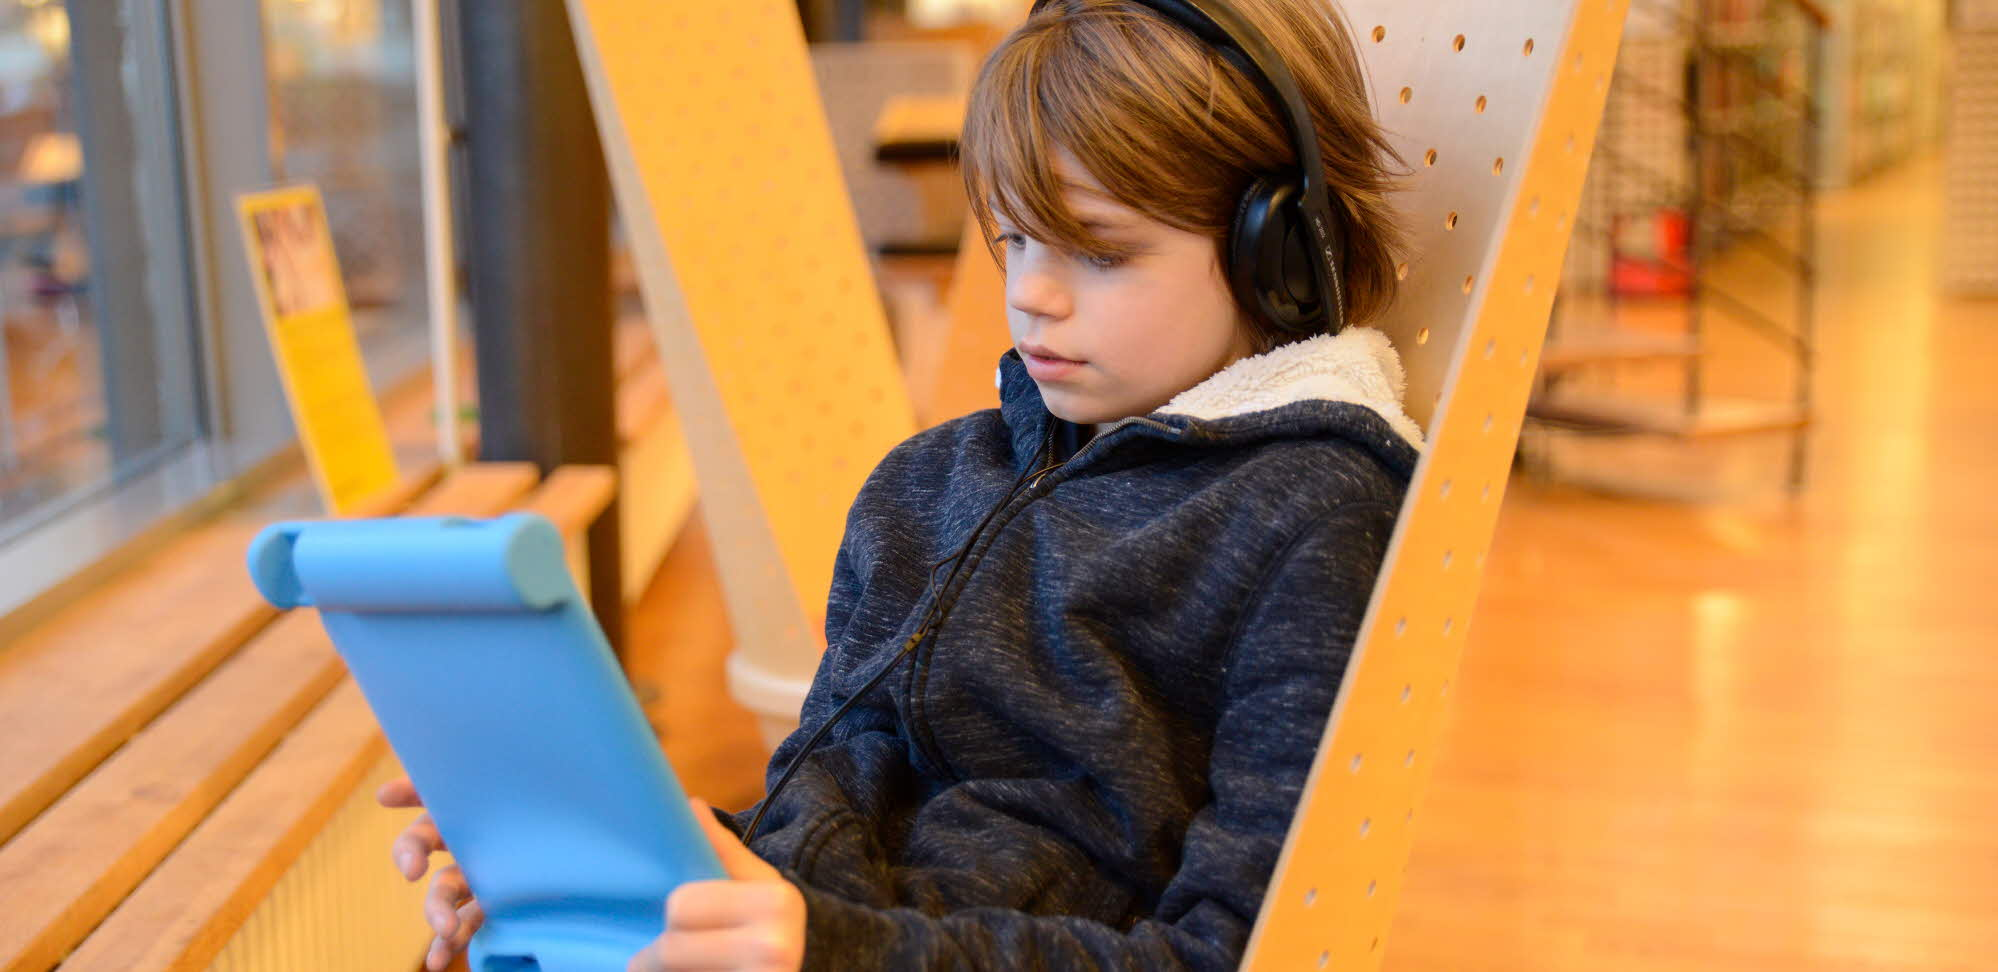 Child listening and reading on a tablet